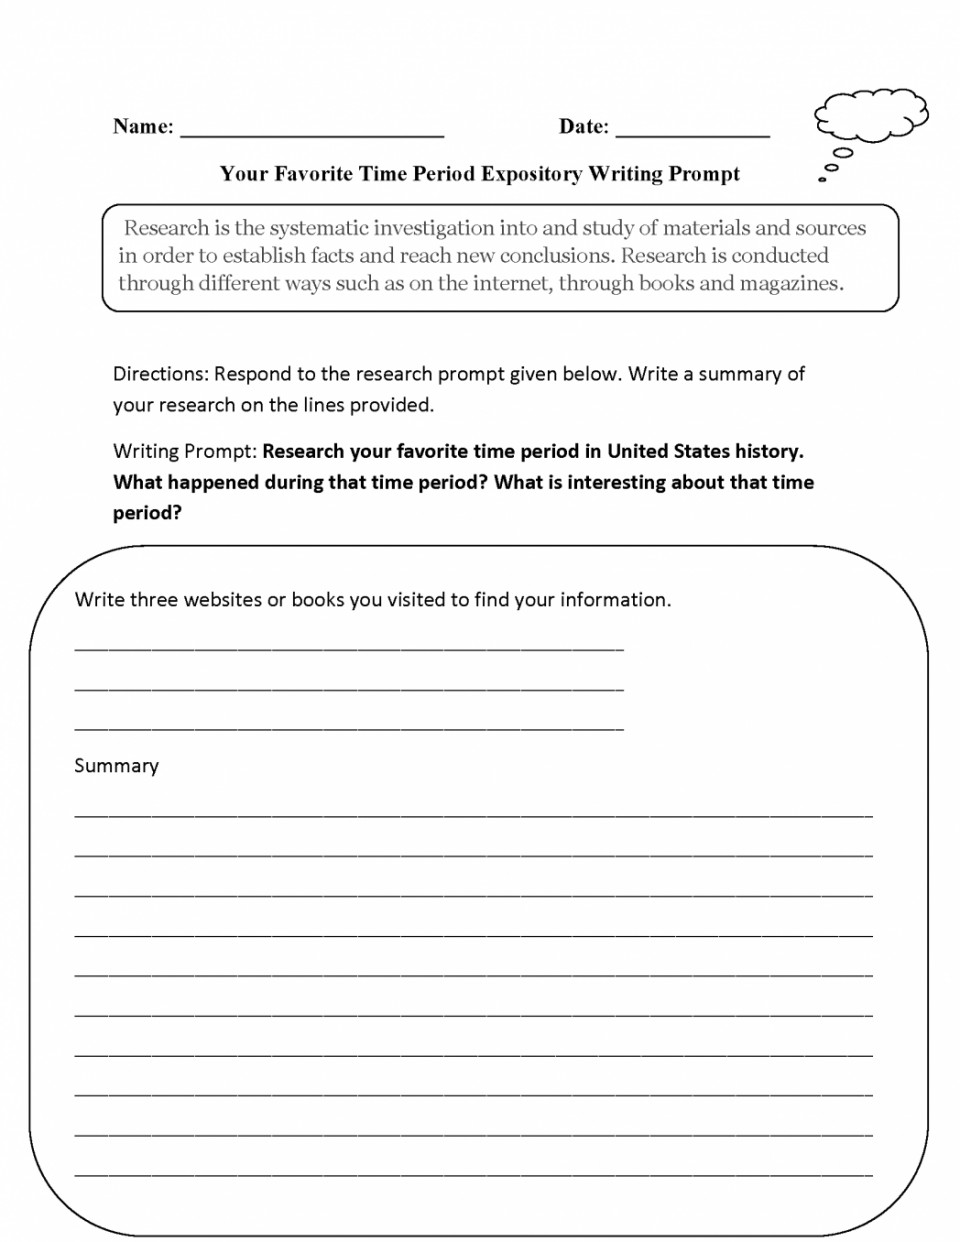 018 Essay Example Good Informative Topics Prompts Favorite Time Period Expository Writing P To Write An On The Topic Of Immigration Remarkable 2018 For High School Prompt 4th Grade 960